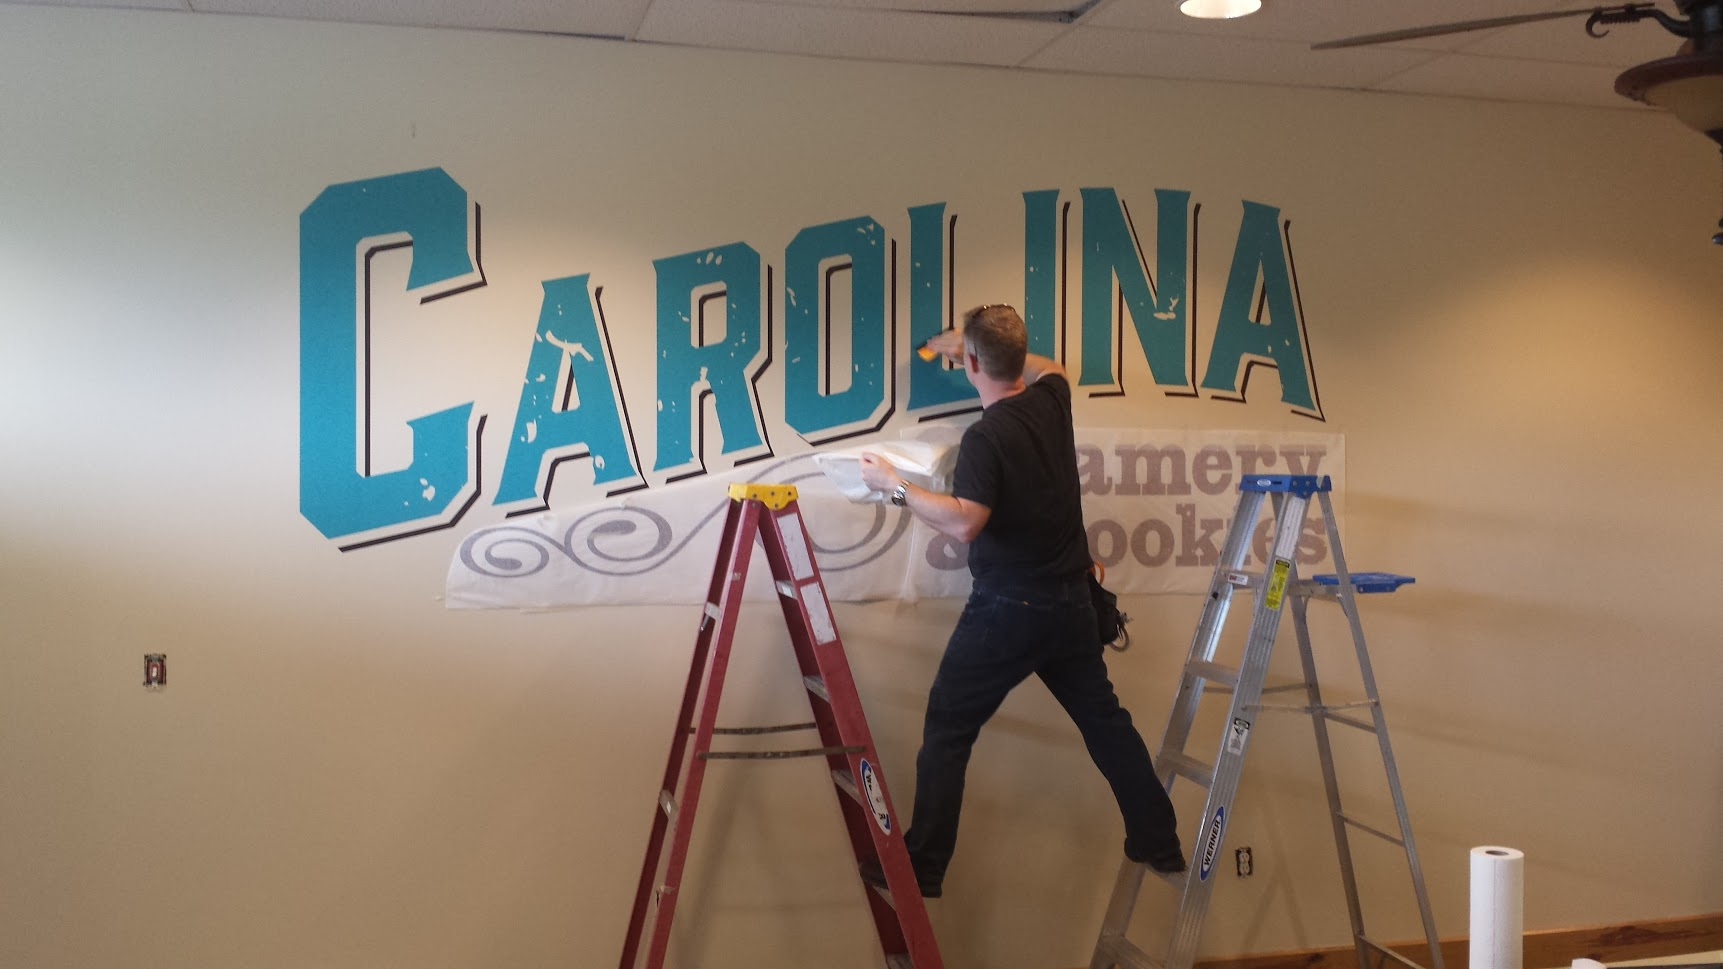 carolina creamery cookies wall graphics